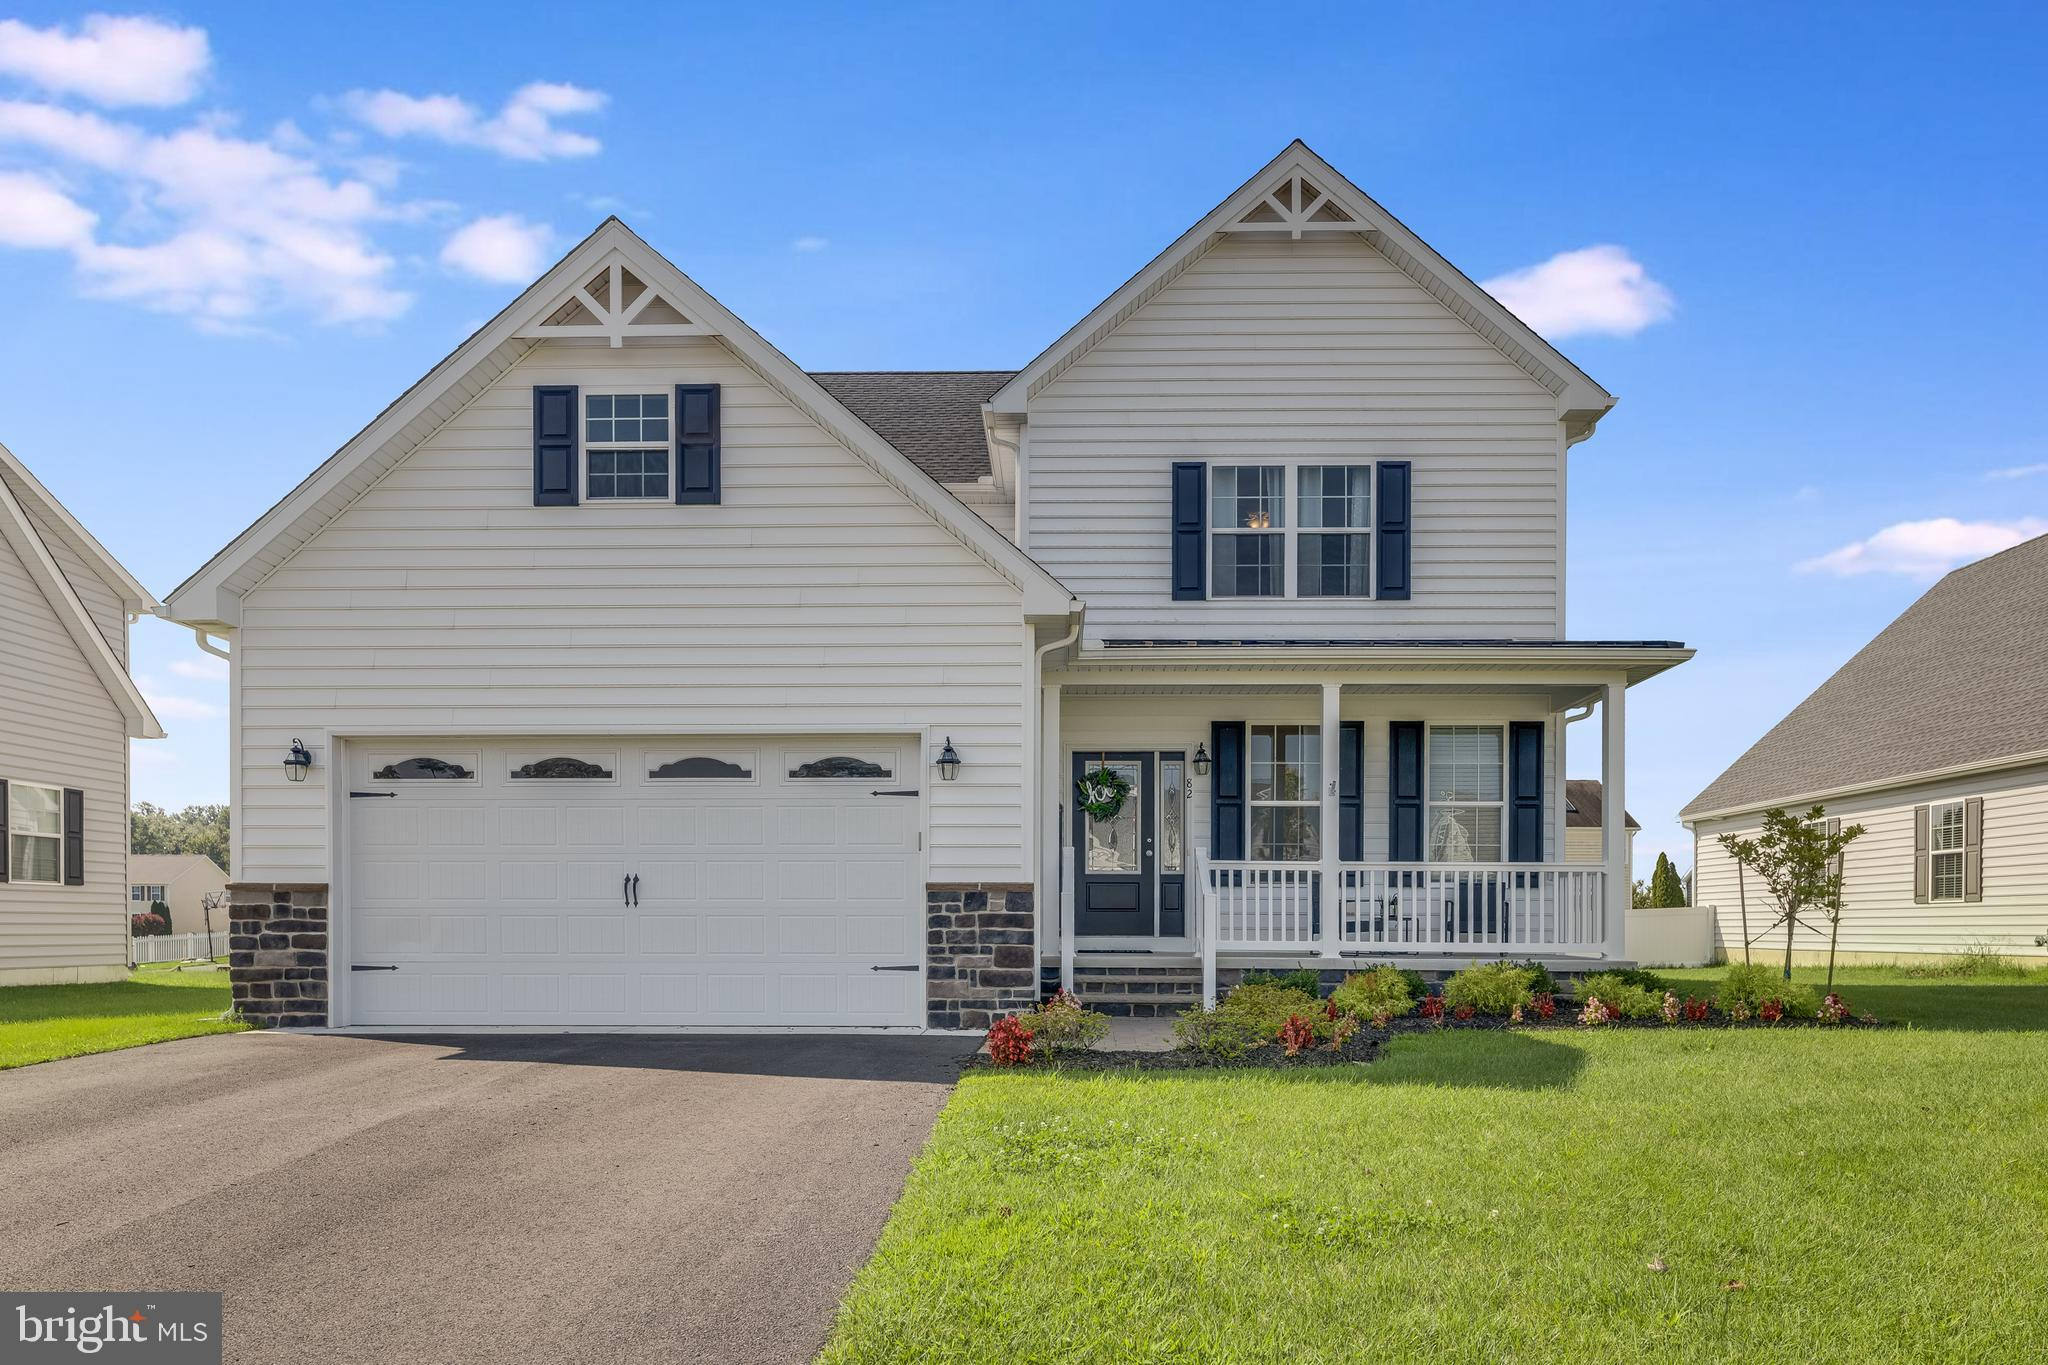 Spacious 2 story home. This model features the Master bedroom on the first floor with a walk in closet, spacious bathroom with a fiberglass shower and private toilet and double sink vanity. Has unfnished basement with full bath plumbing rough in. sod and irrigation. Unfinished attic space above the garage and unfinshed storage upstairs as well. Laundry room located on first floor with a beautiful granite top laundry sink. Some features in this home include 9ft ceilings on the first floor, 42 inch cabinets in kitchen, granite counter tops, stainless steel appliances and more! Please call to schedule a showing today! Settlement late February 2022 or March 2022!